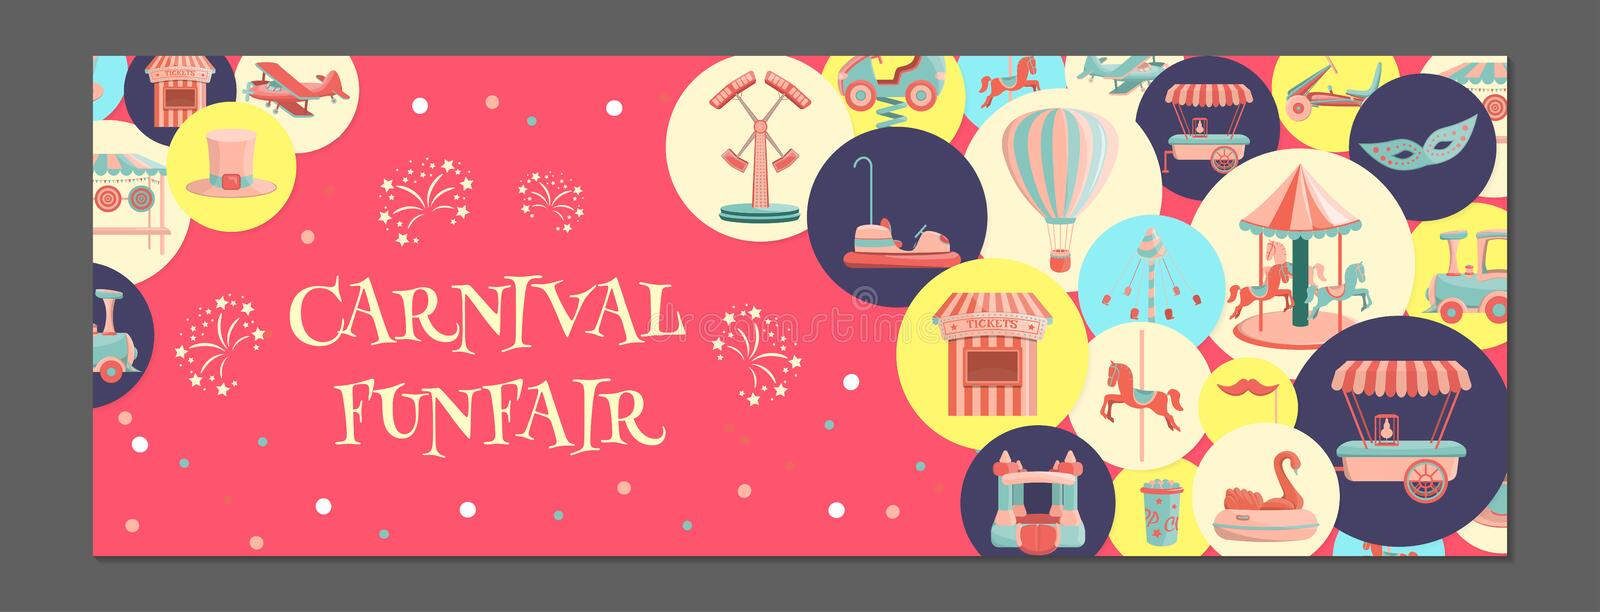 Horizontal banner with amusement park icons in colored circles. royalty free illustration